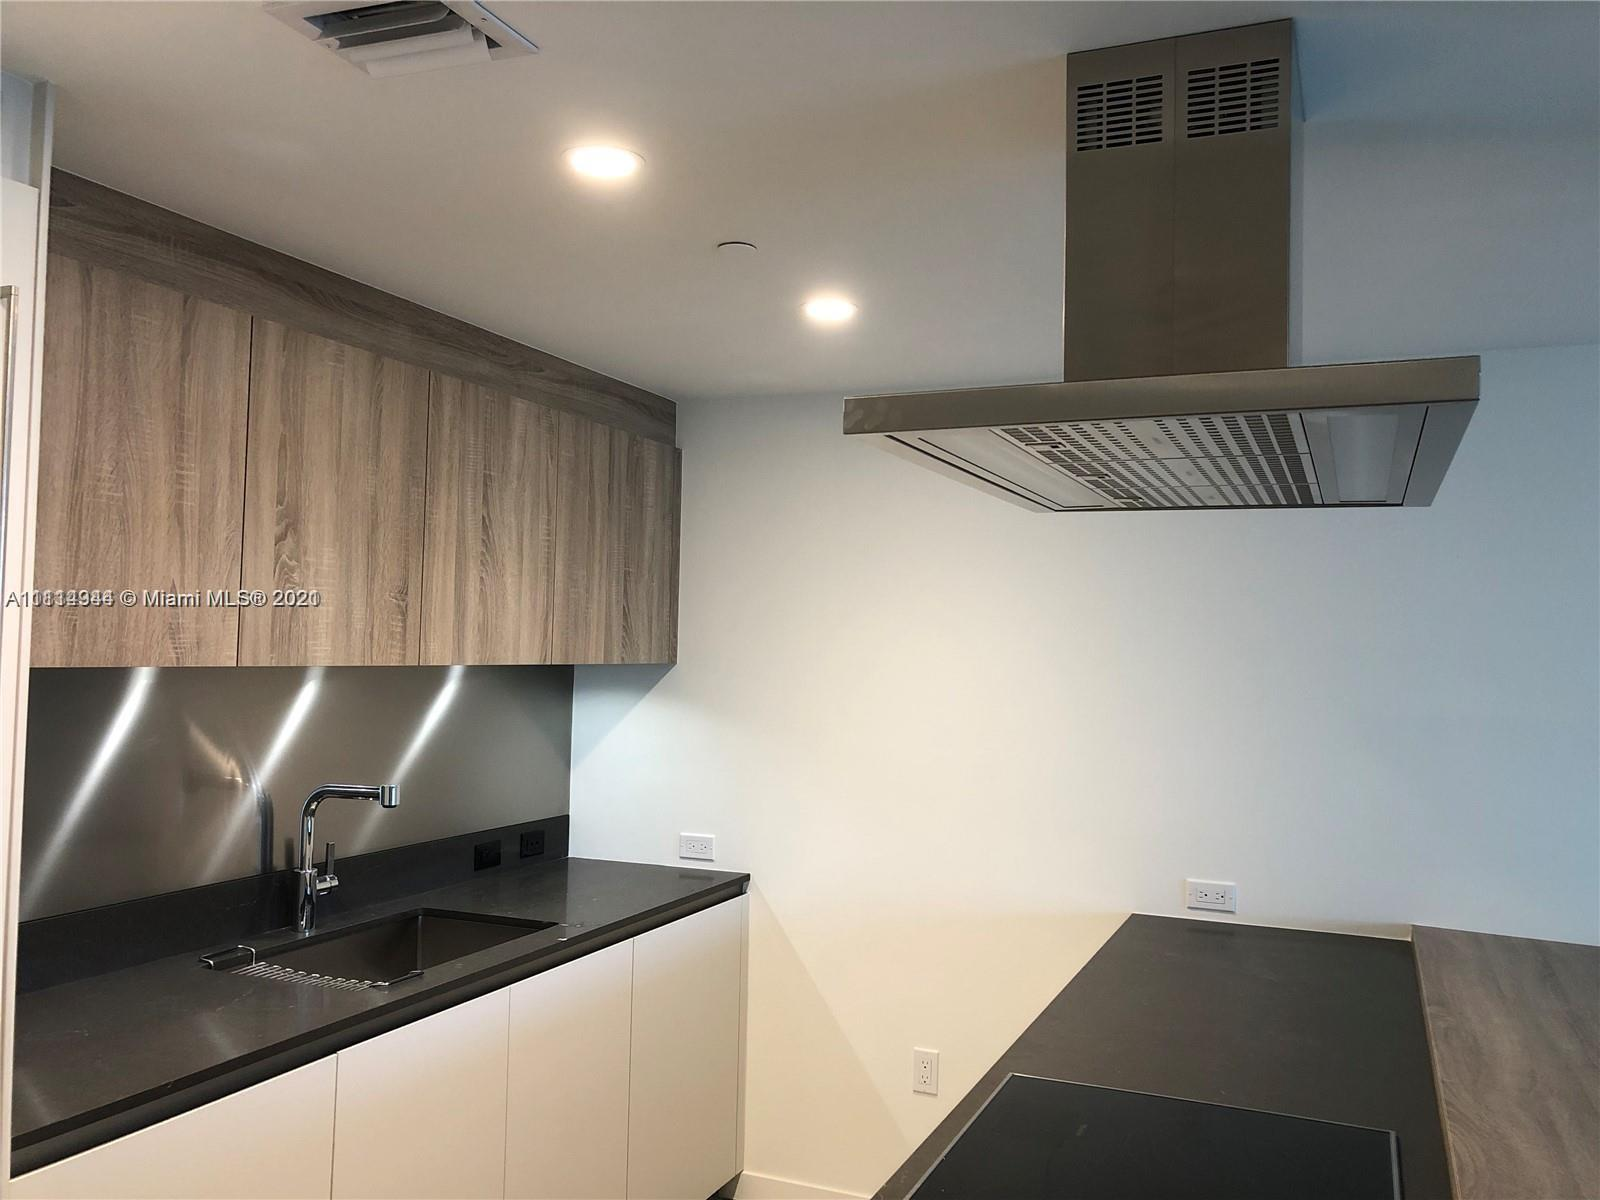 Flatiron Brickell is an elegant and luxurious Condo. Walking distance to Brickell City Centre and am